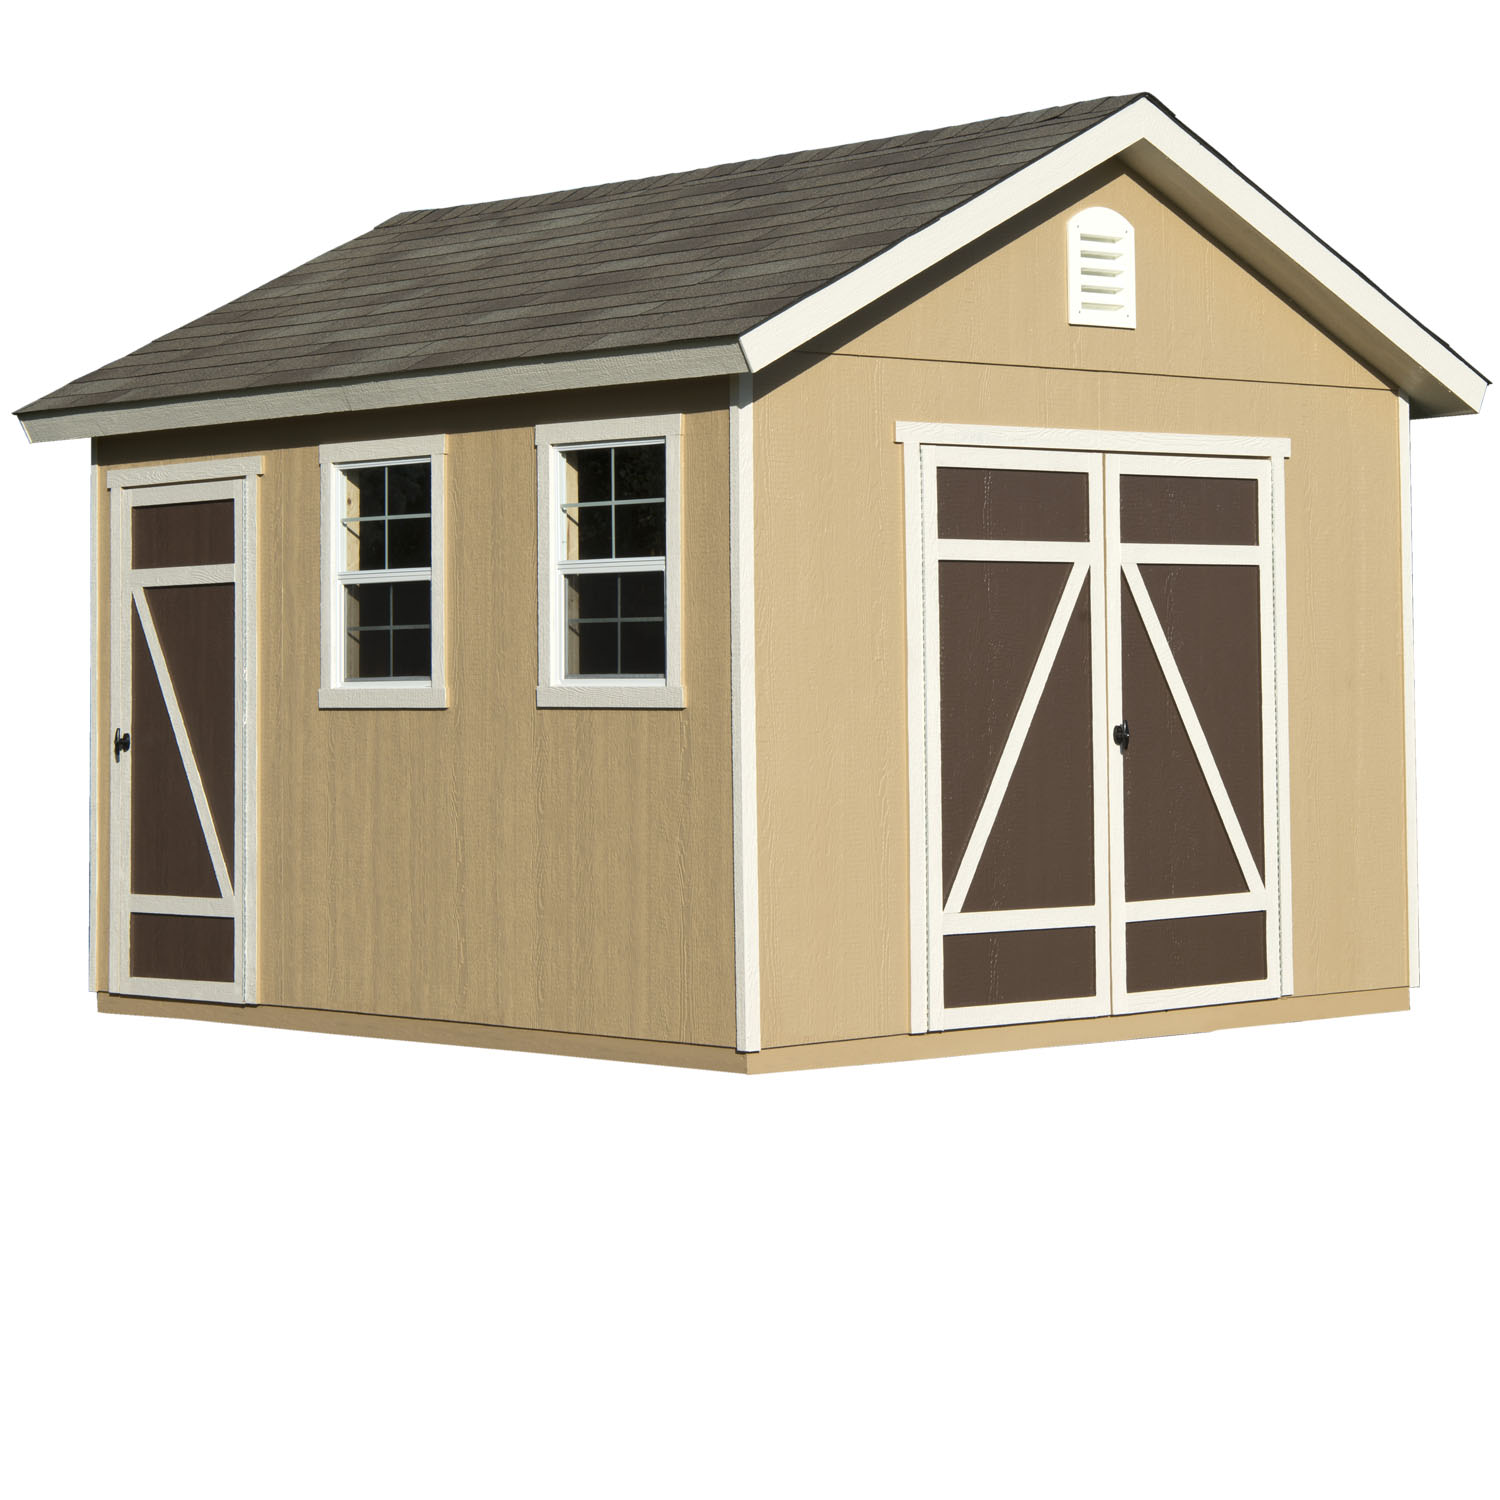 Hillsdale 10×12 Shed